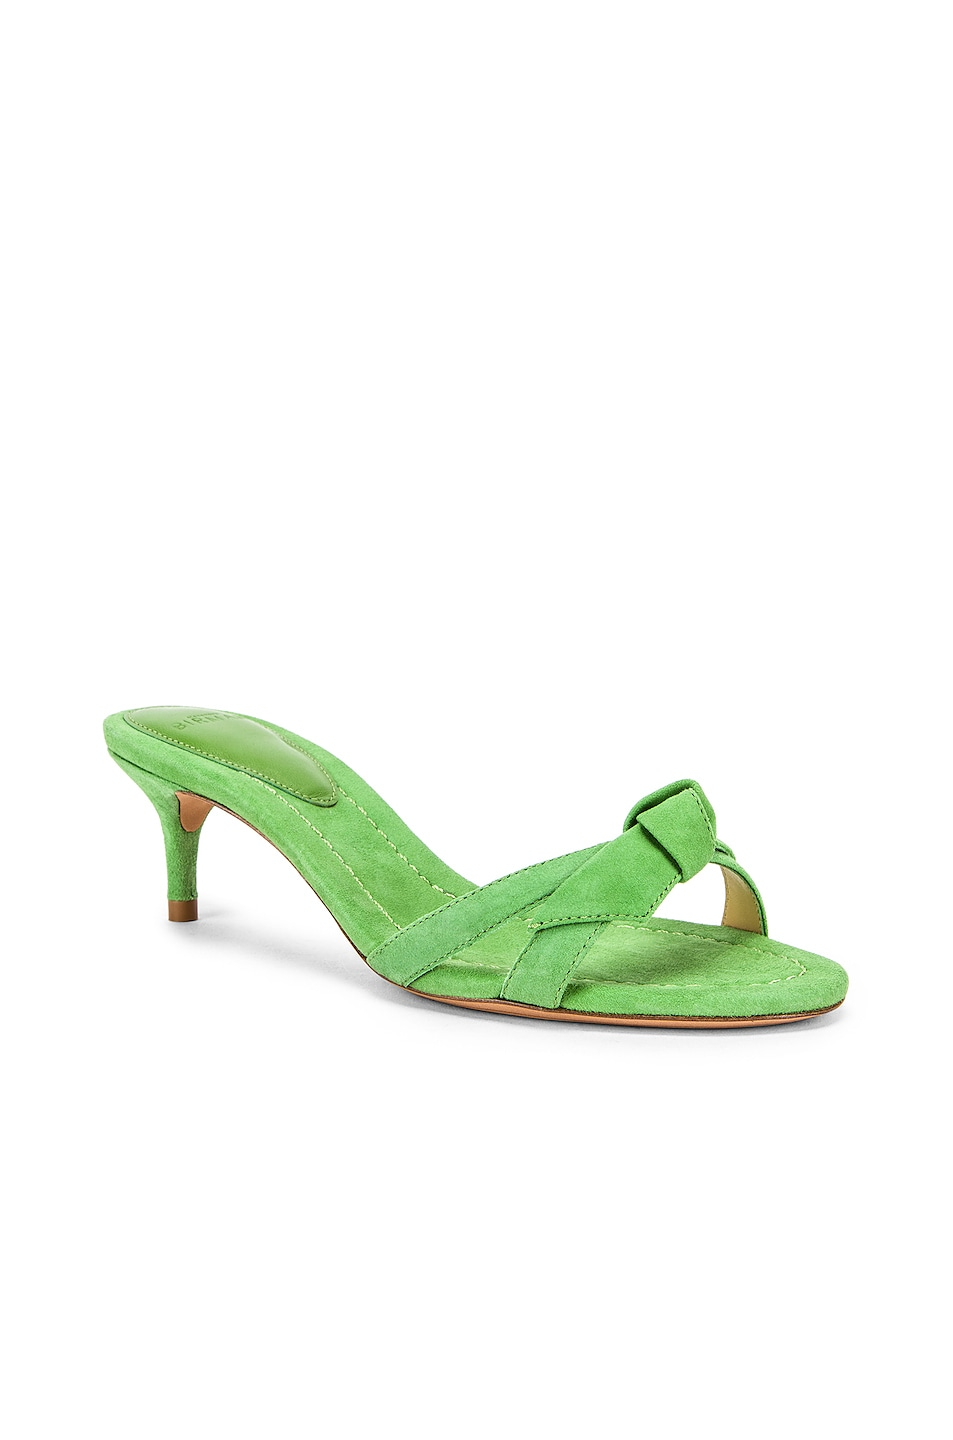 Image 2 of Alexandre Birman Cocktail Clarita Kitten Heel in Kiwi